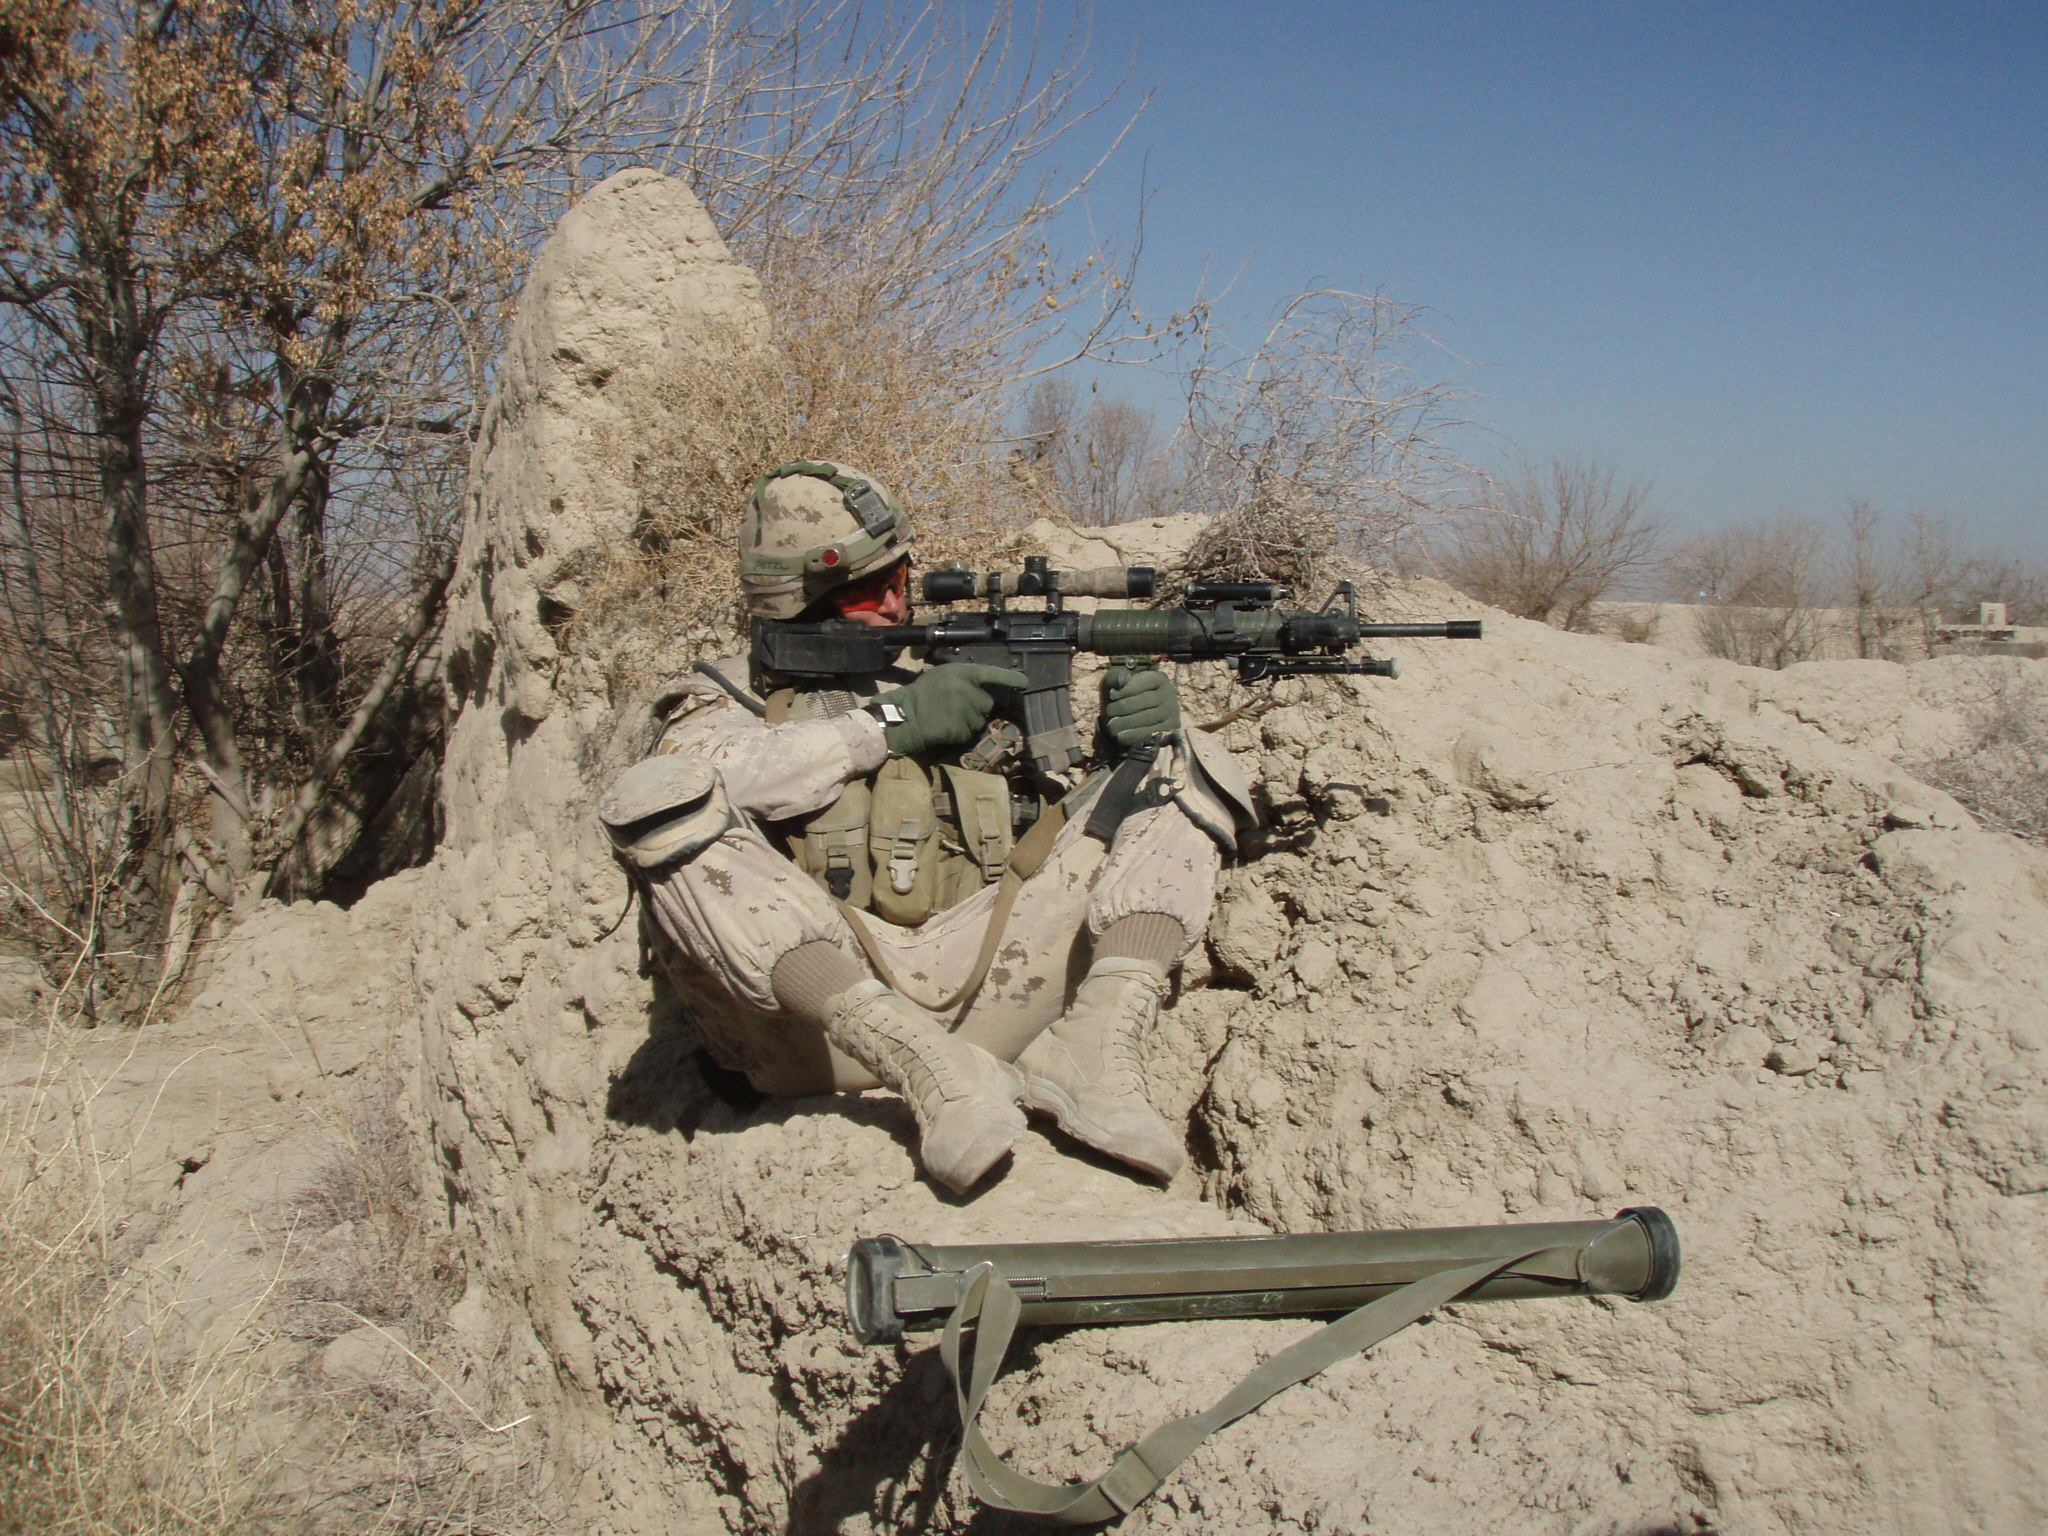 Corporal Muir pulling perimeter security around a shattered school that the Canadians were attempting to restore, outside Forward Operating Base Sper Wan Ghar, Panjwaii district, Kandahar, approx. Feb.-March 2010.